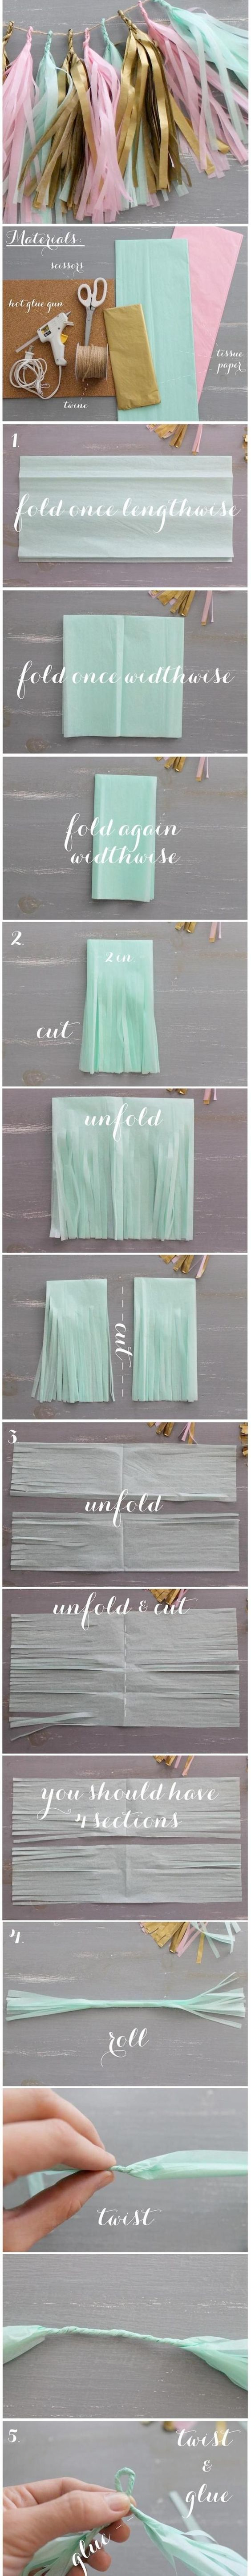 DIY Tassel Garland in pretty pastels. Perfect for any celebration from baby showers to first birthday parties.: